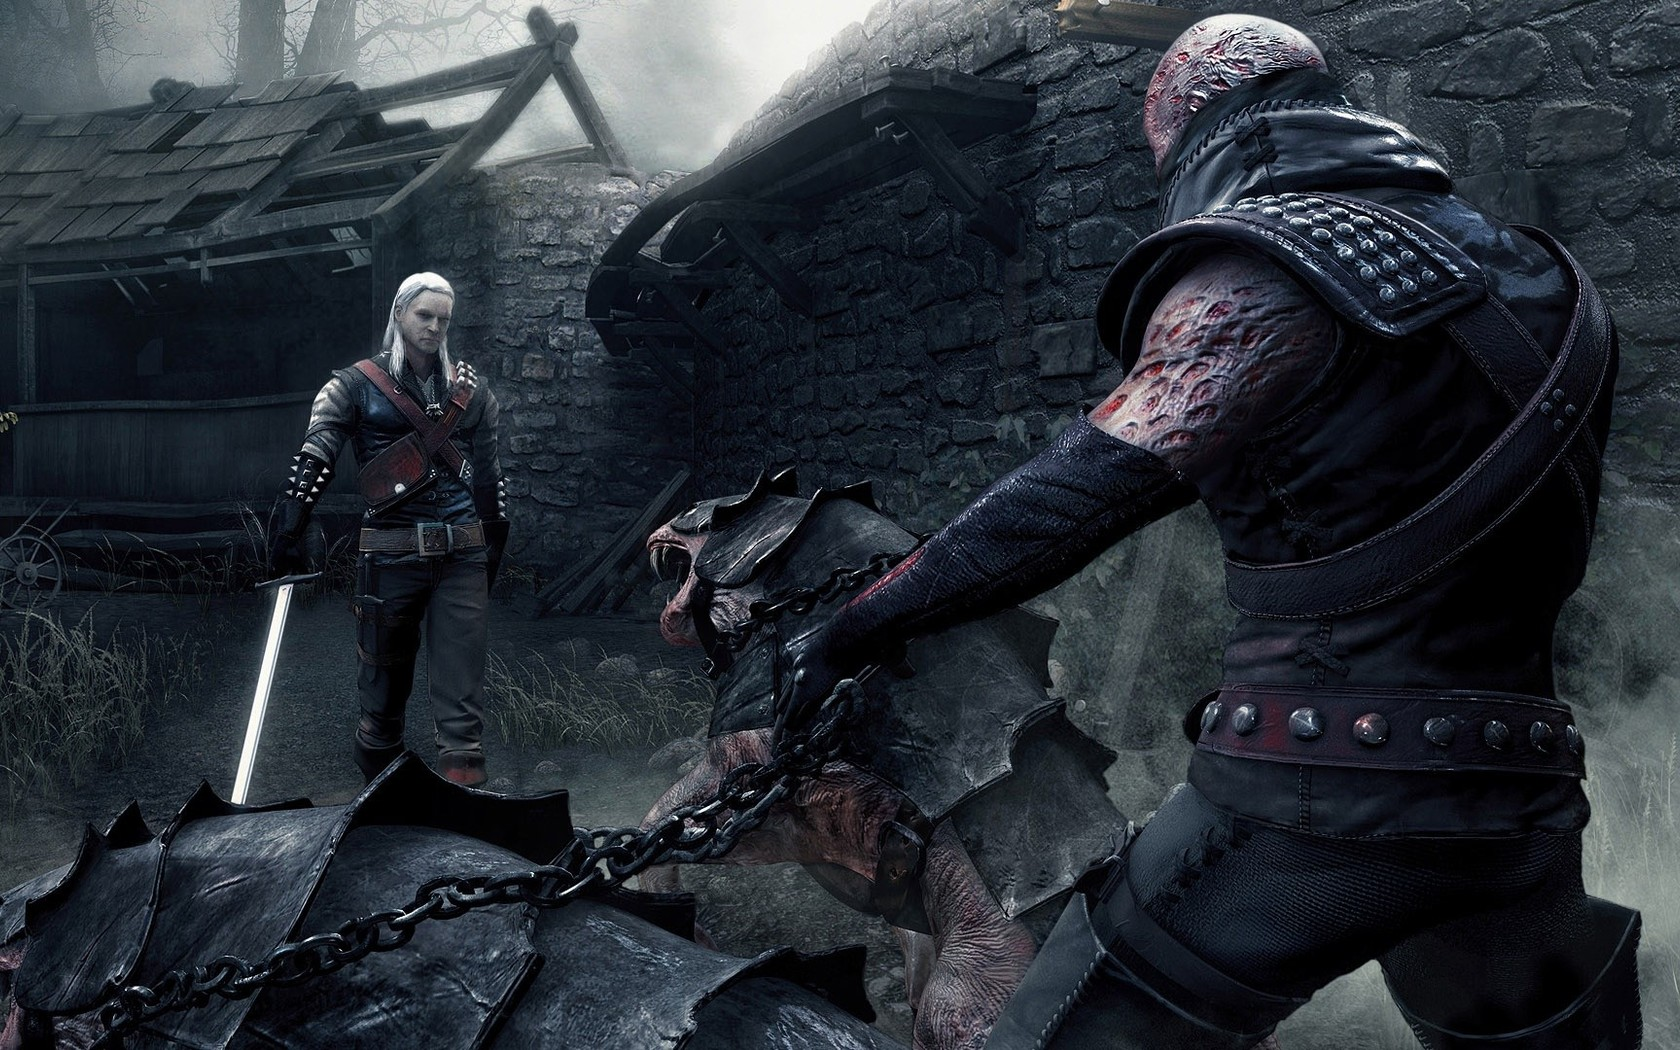 The Witcher 3 Wallpaper 1920x1080: [71+] Witcher Wallpaper On WallpaperSafari